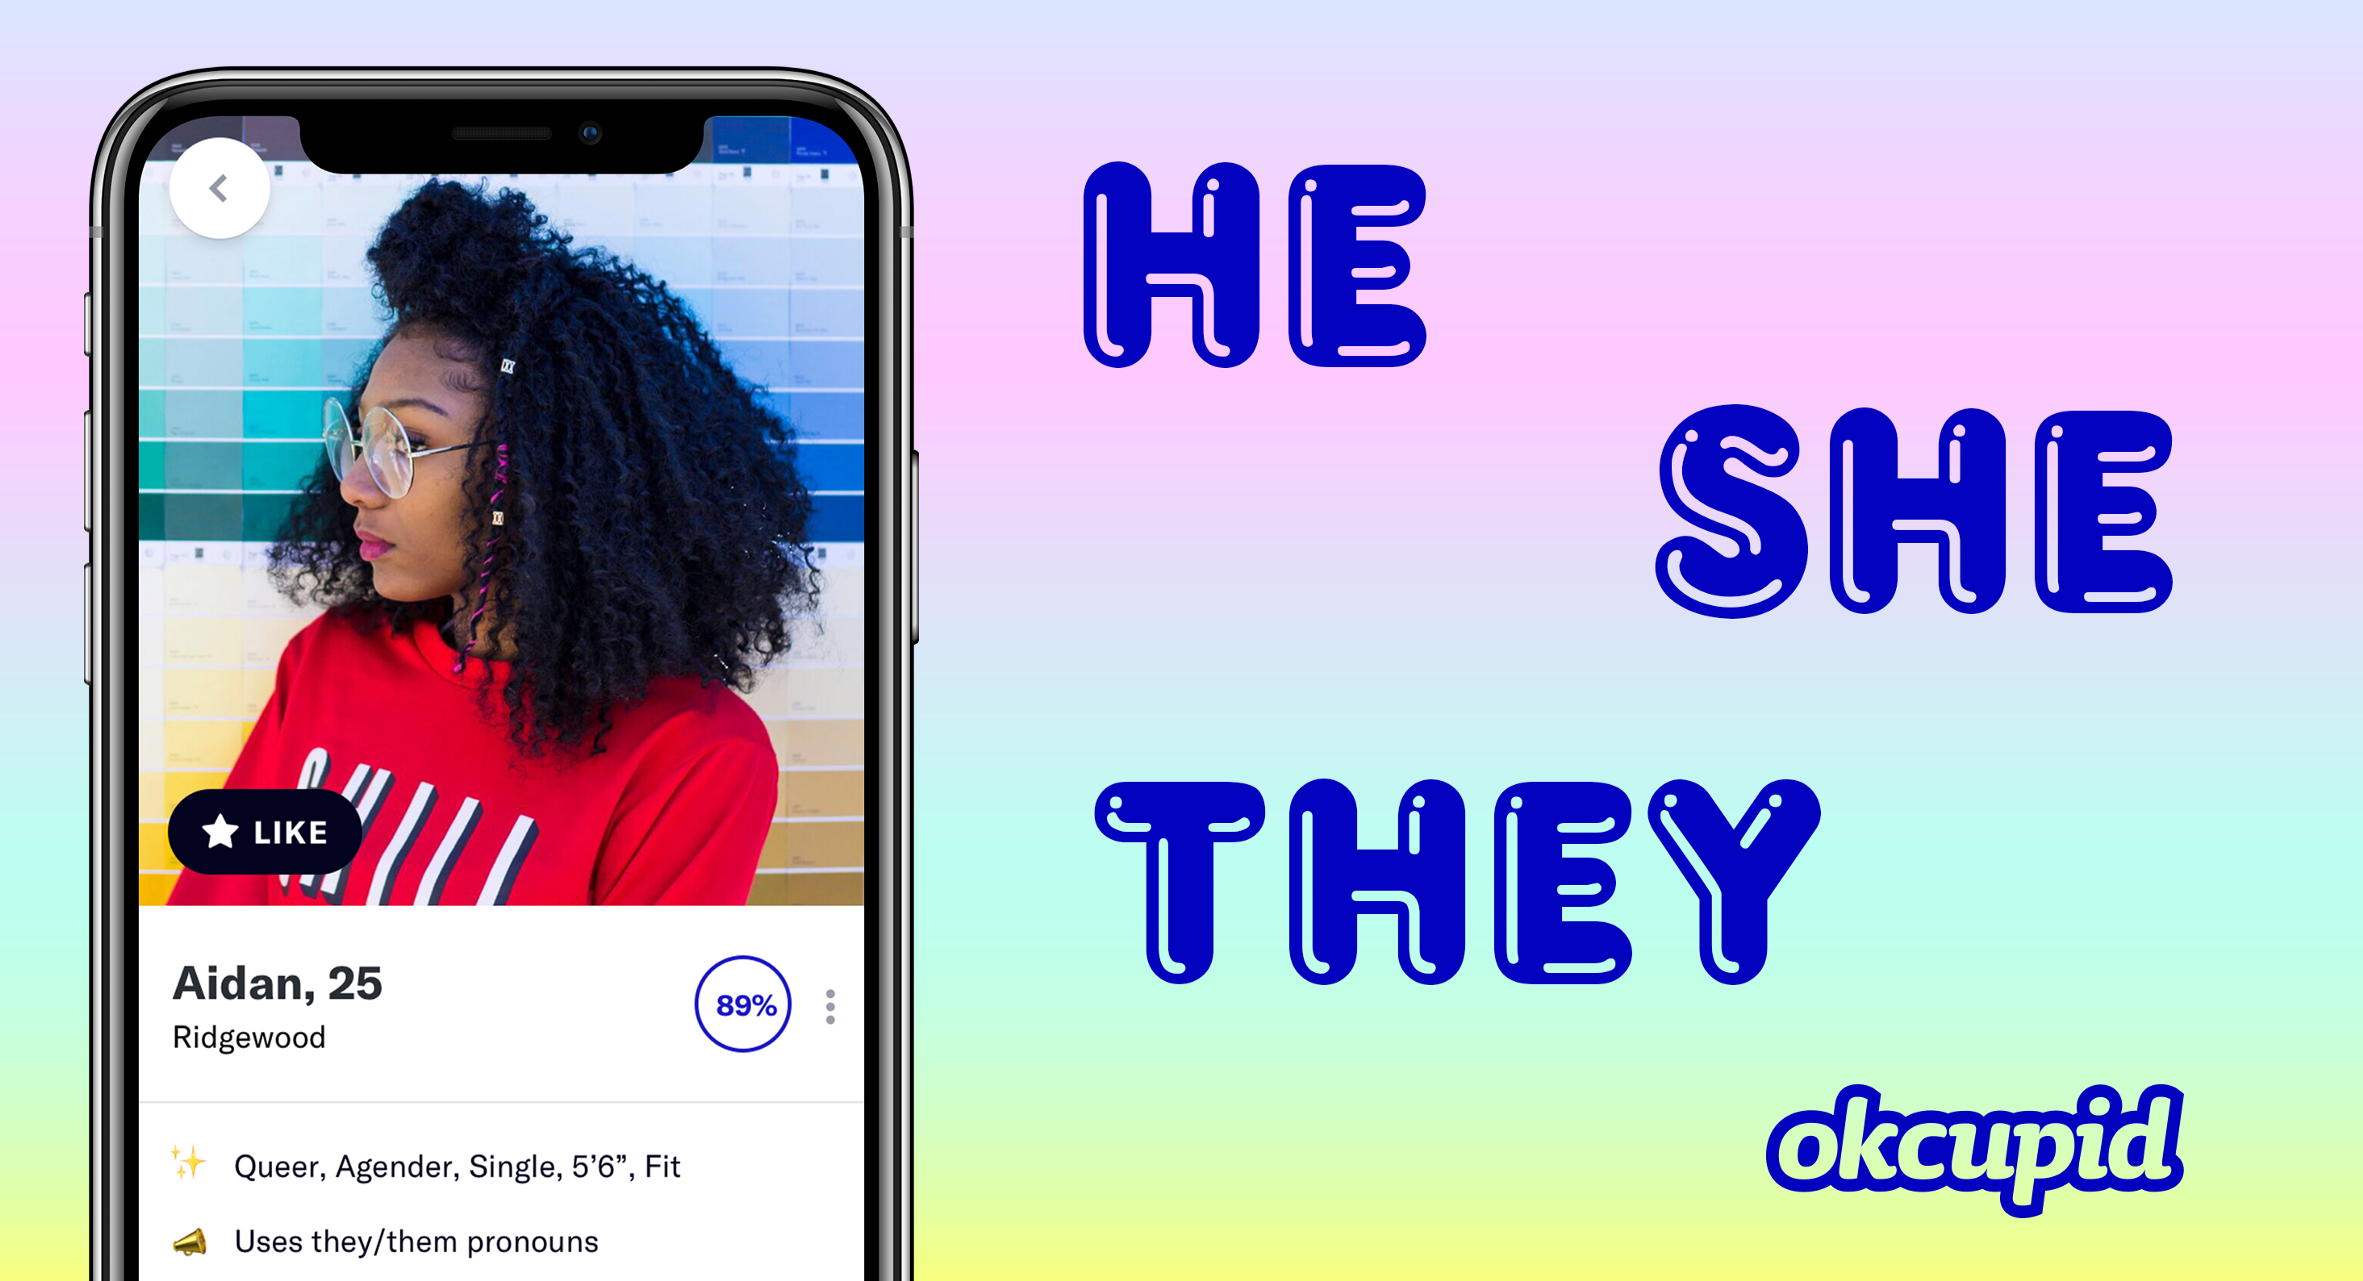 OkCupid Makes 'Preferred Pronoun' Feature Available For All Members